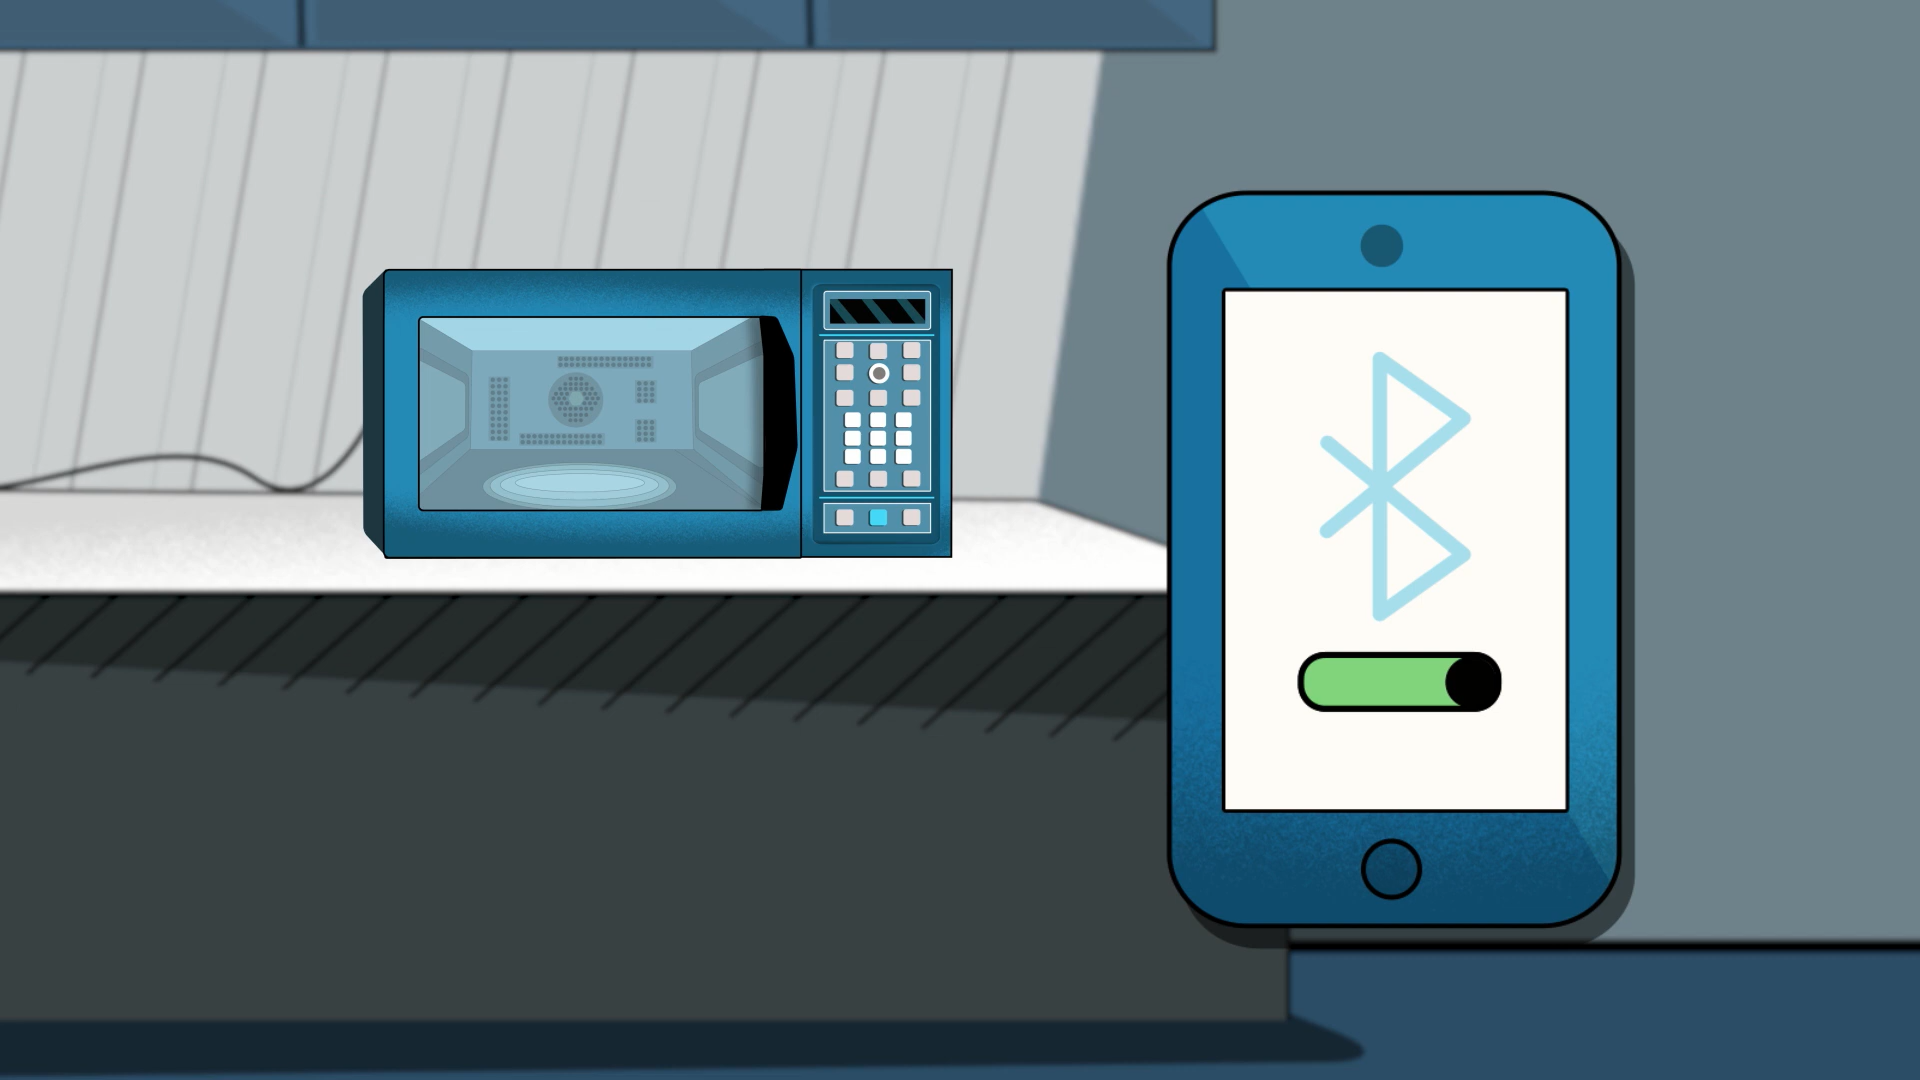 Illustration of the Amazon Smart Oven sitting on top of a counter with a smartphone in the foreground displaying the Bluetooth symbol.